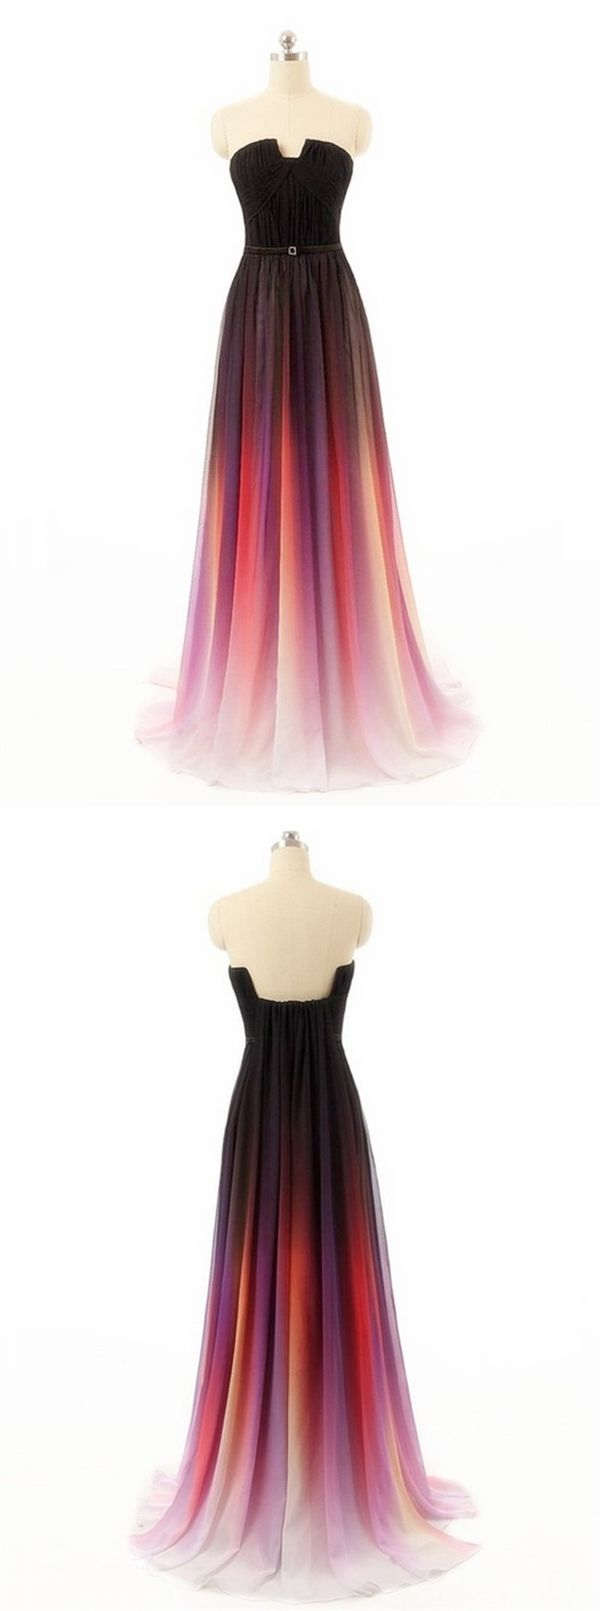 prom dresses long,prom dresses multi color,prom dresses chiffon